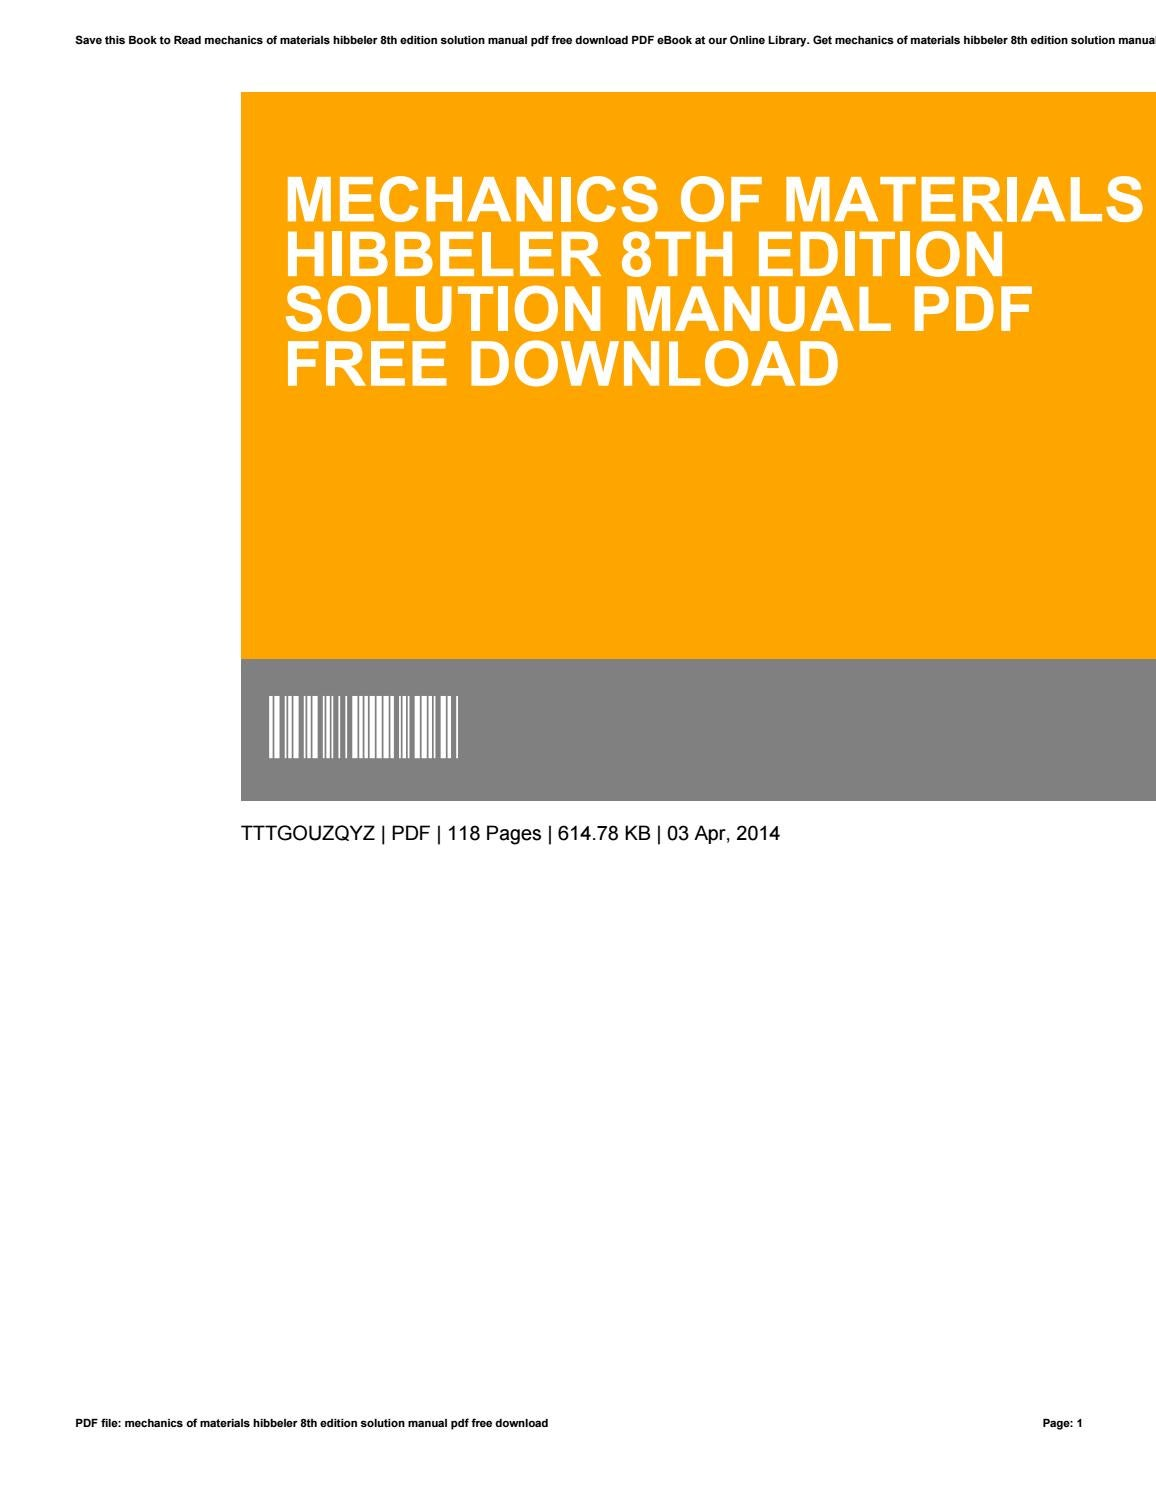 Mechanics of materials hibbeler 8th edition solution manual pdf free  download by AlanDematteo3789 - issuu